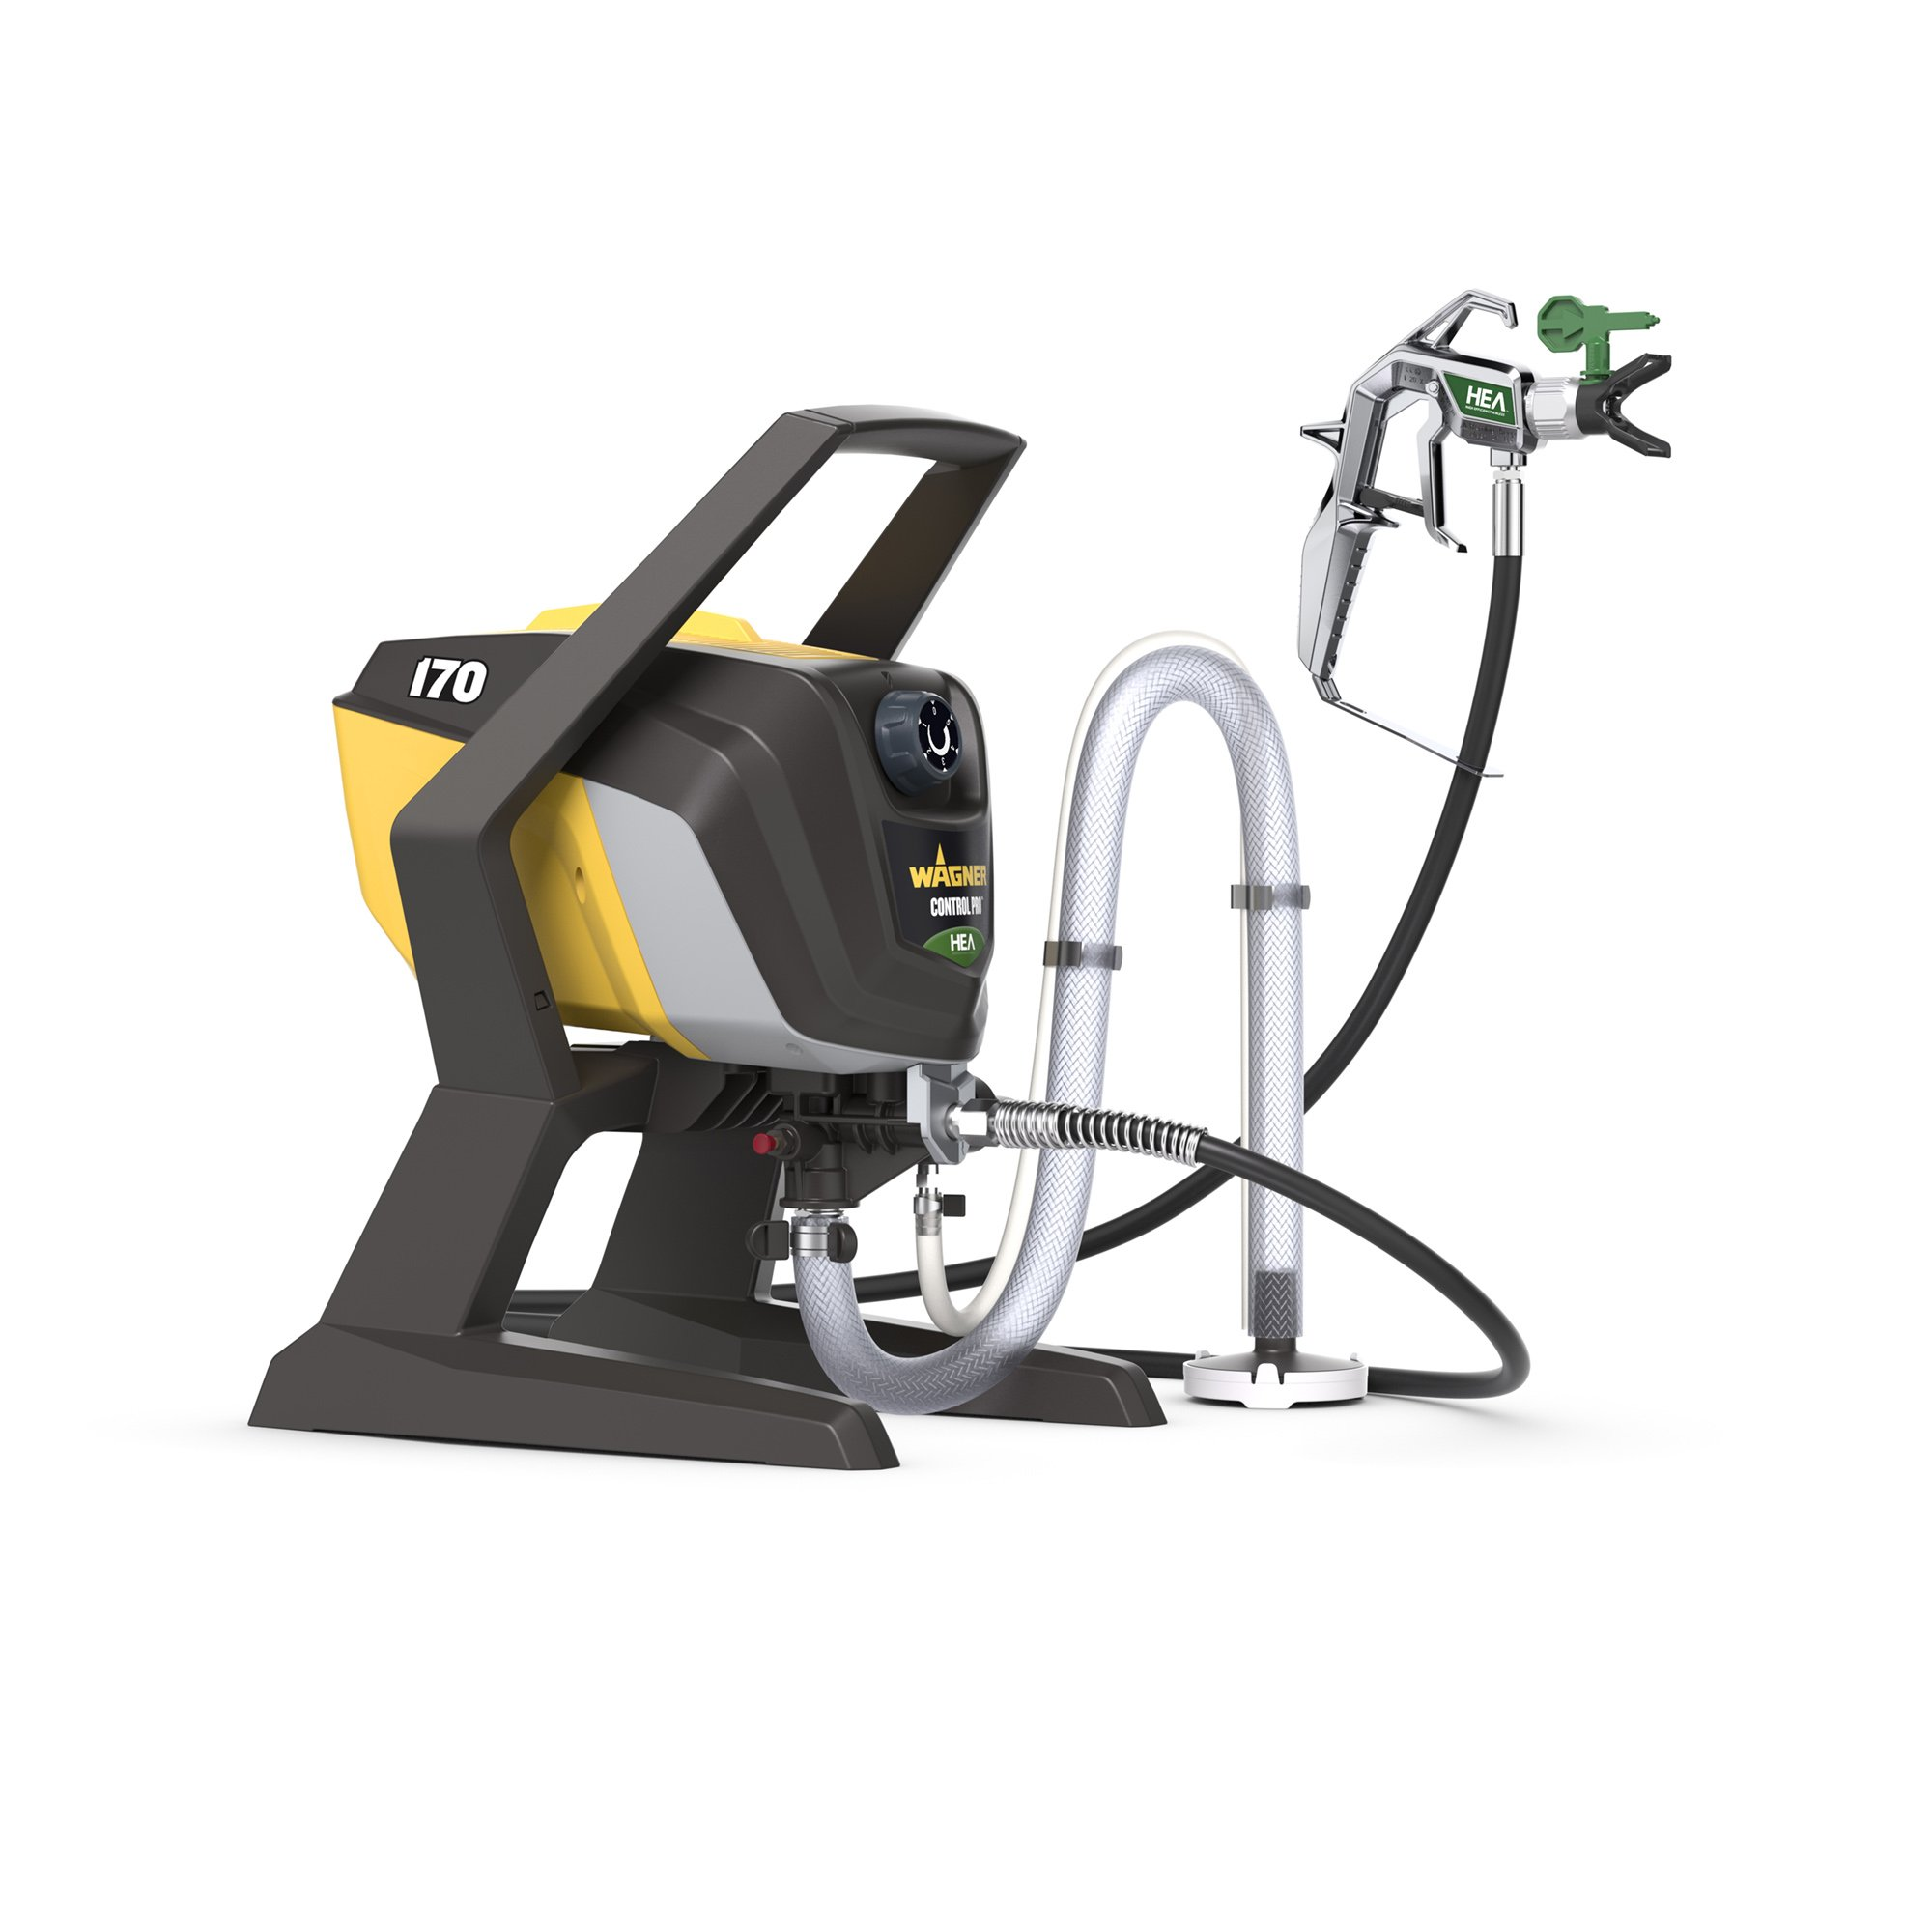 Wagner 0580001 Control Pro 170 Paint Sprayer, High Efficiency Airless with Low Overspray